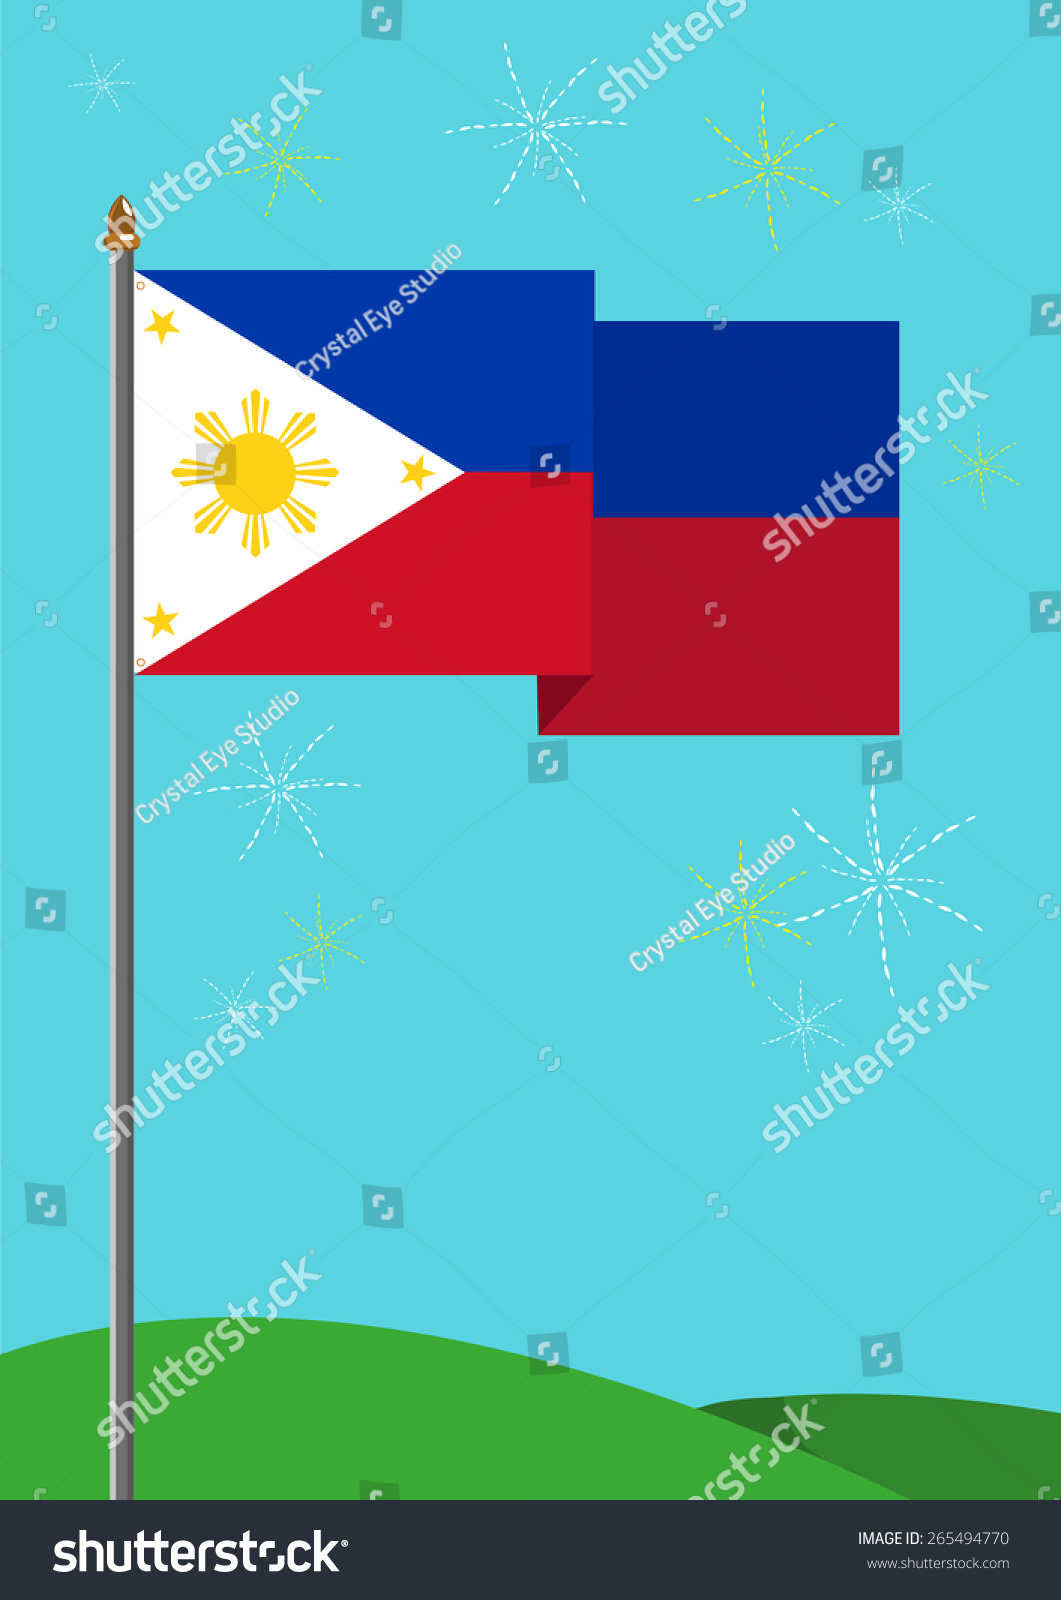 Phillipines Clipart Philippine Flag Pencil Gm Alternator Wire Schematic